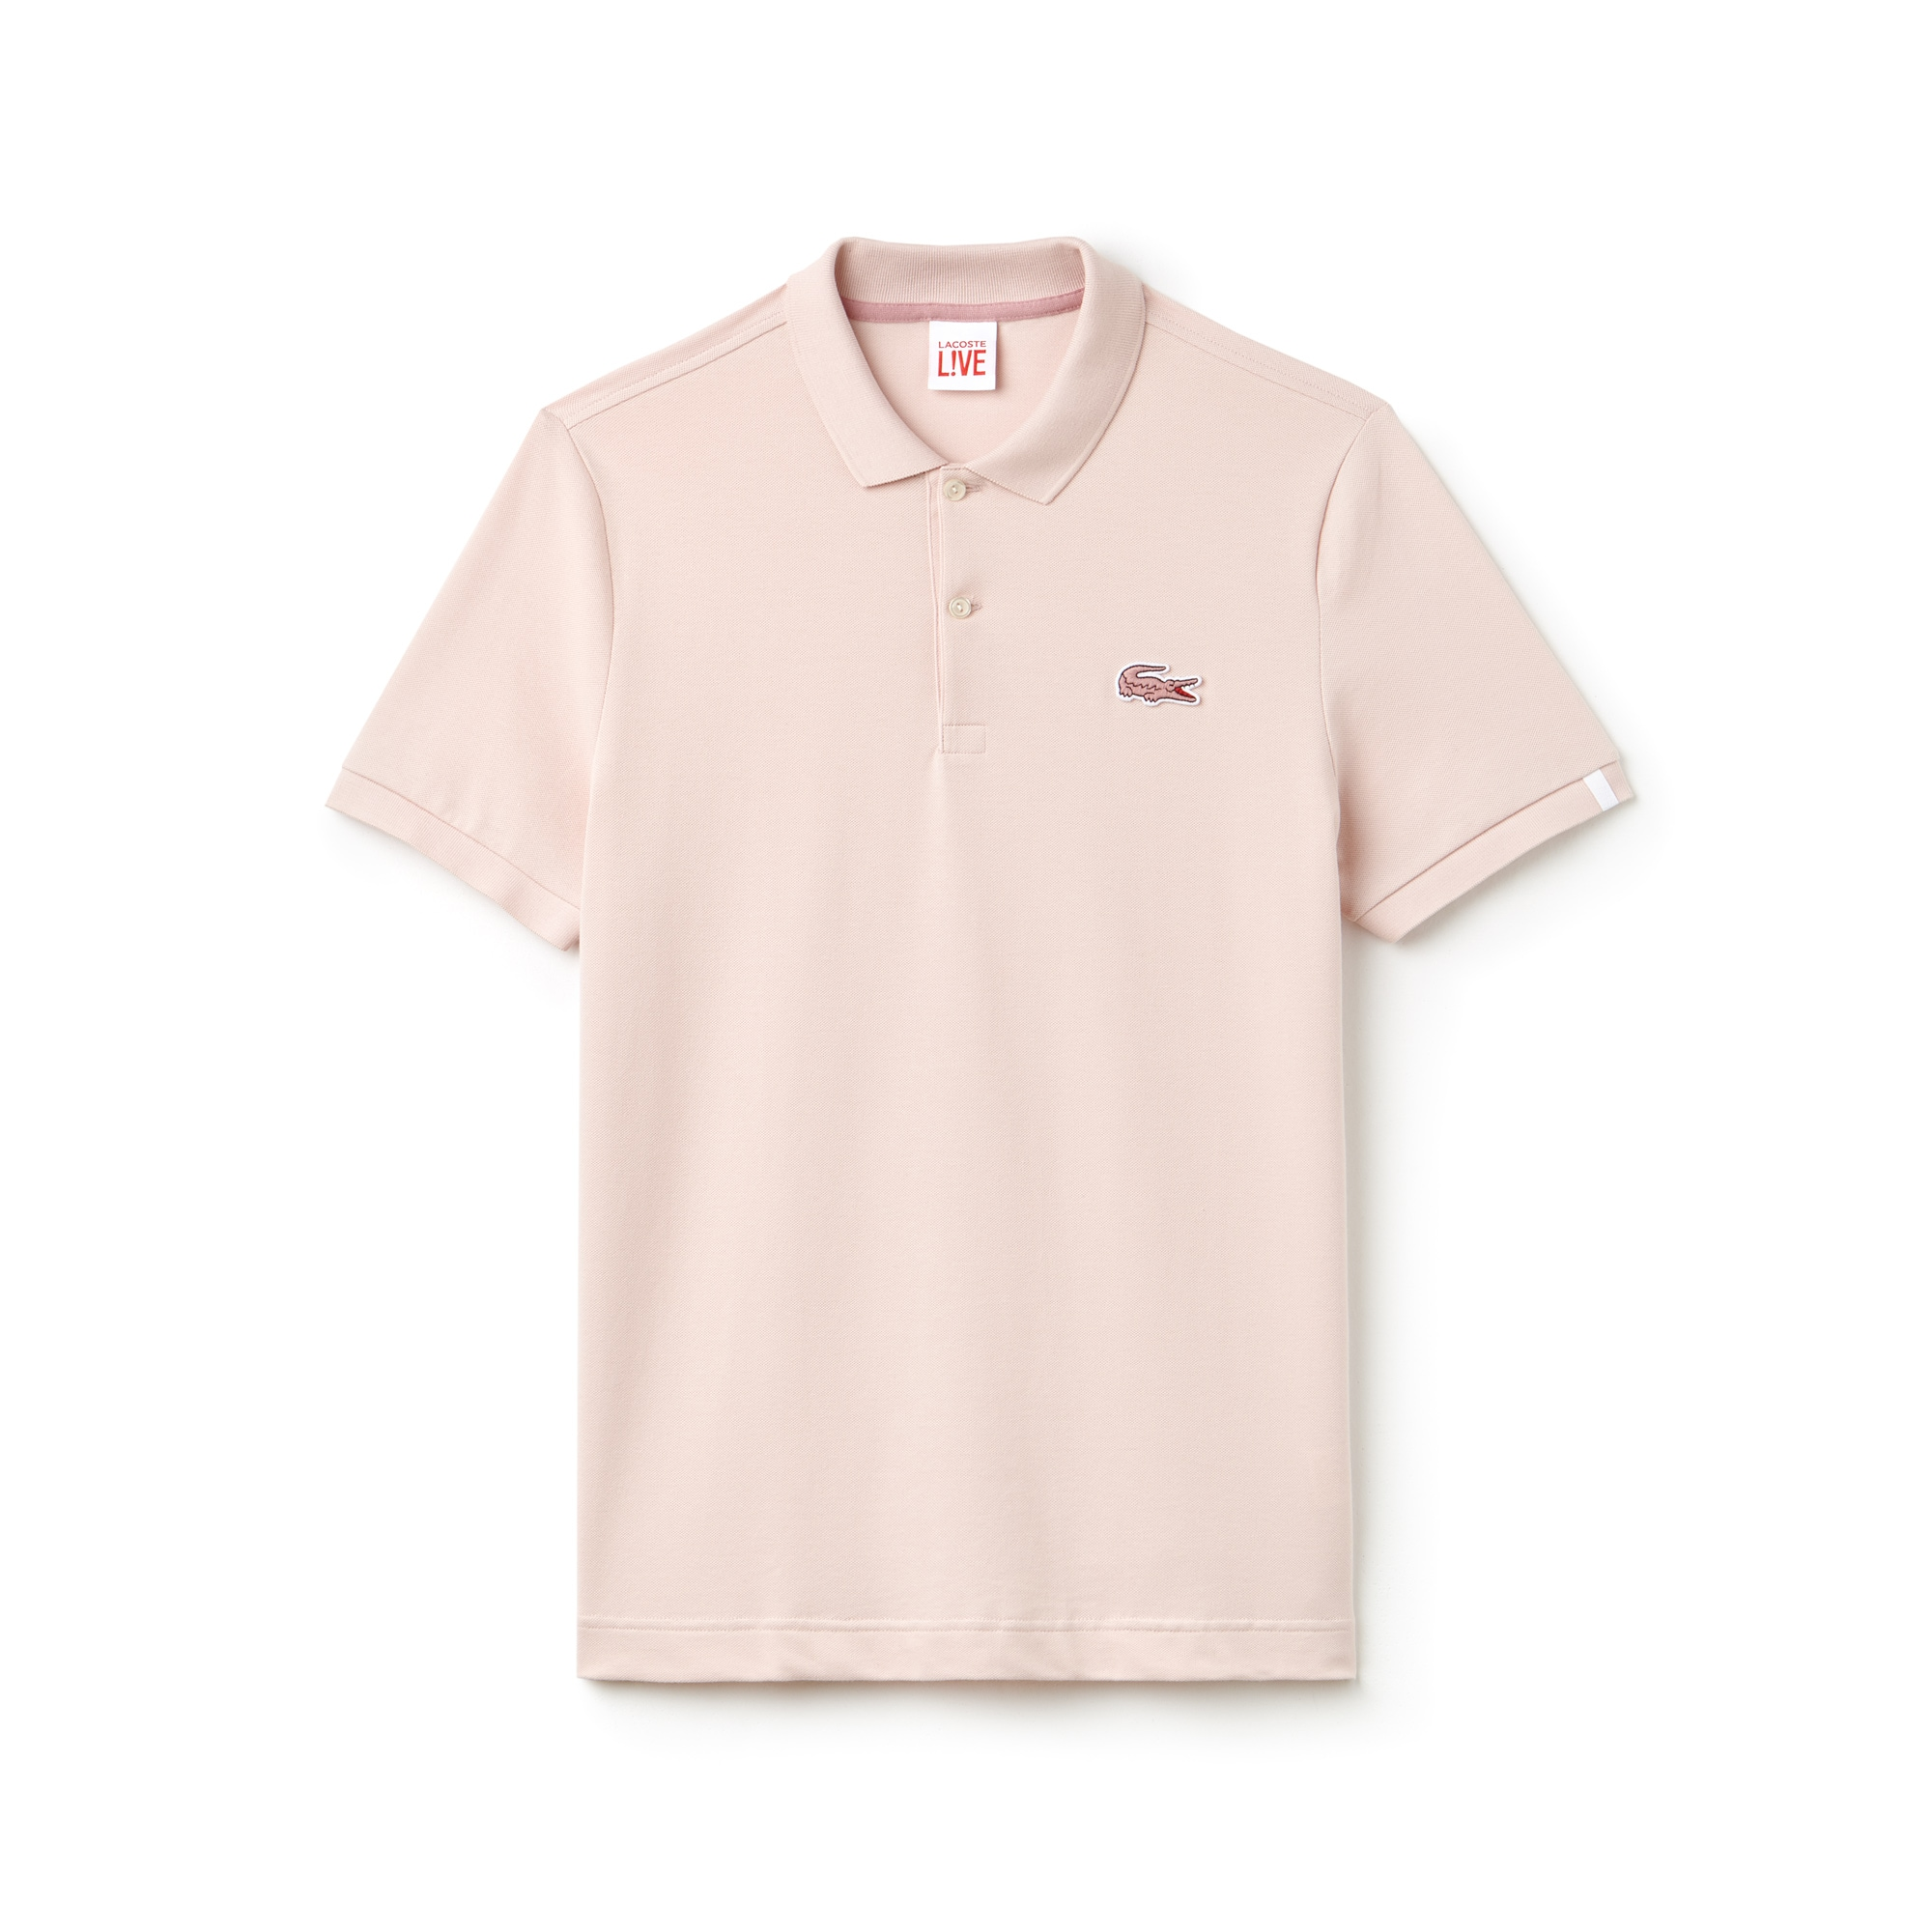 Slim Fit Herren-Poloshirt aus Mini-Piqué mit Stretch LACOSTE L!VE